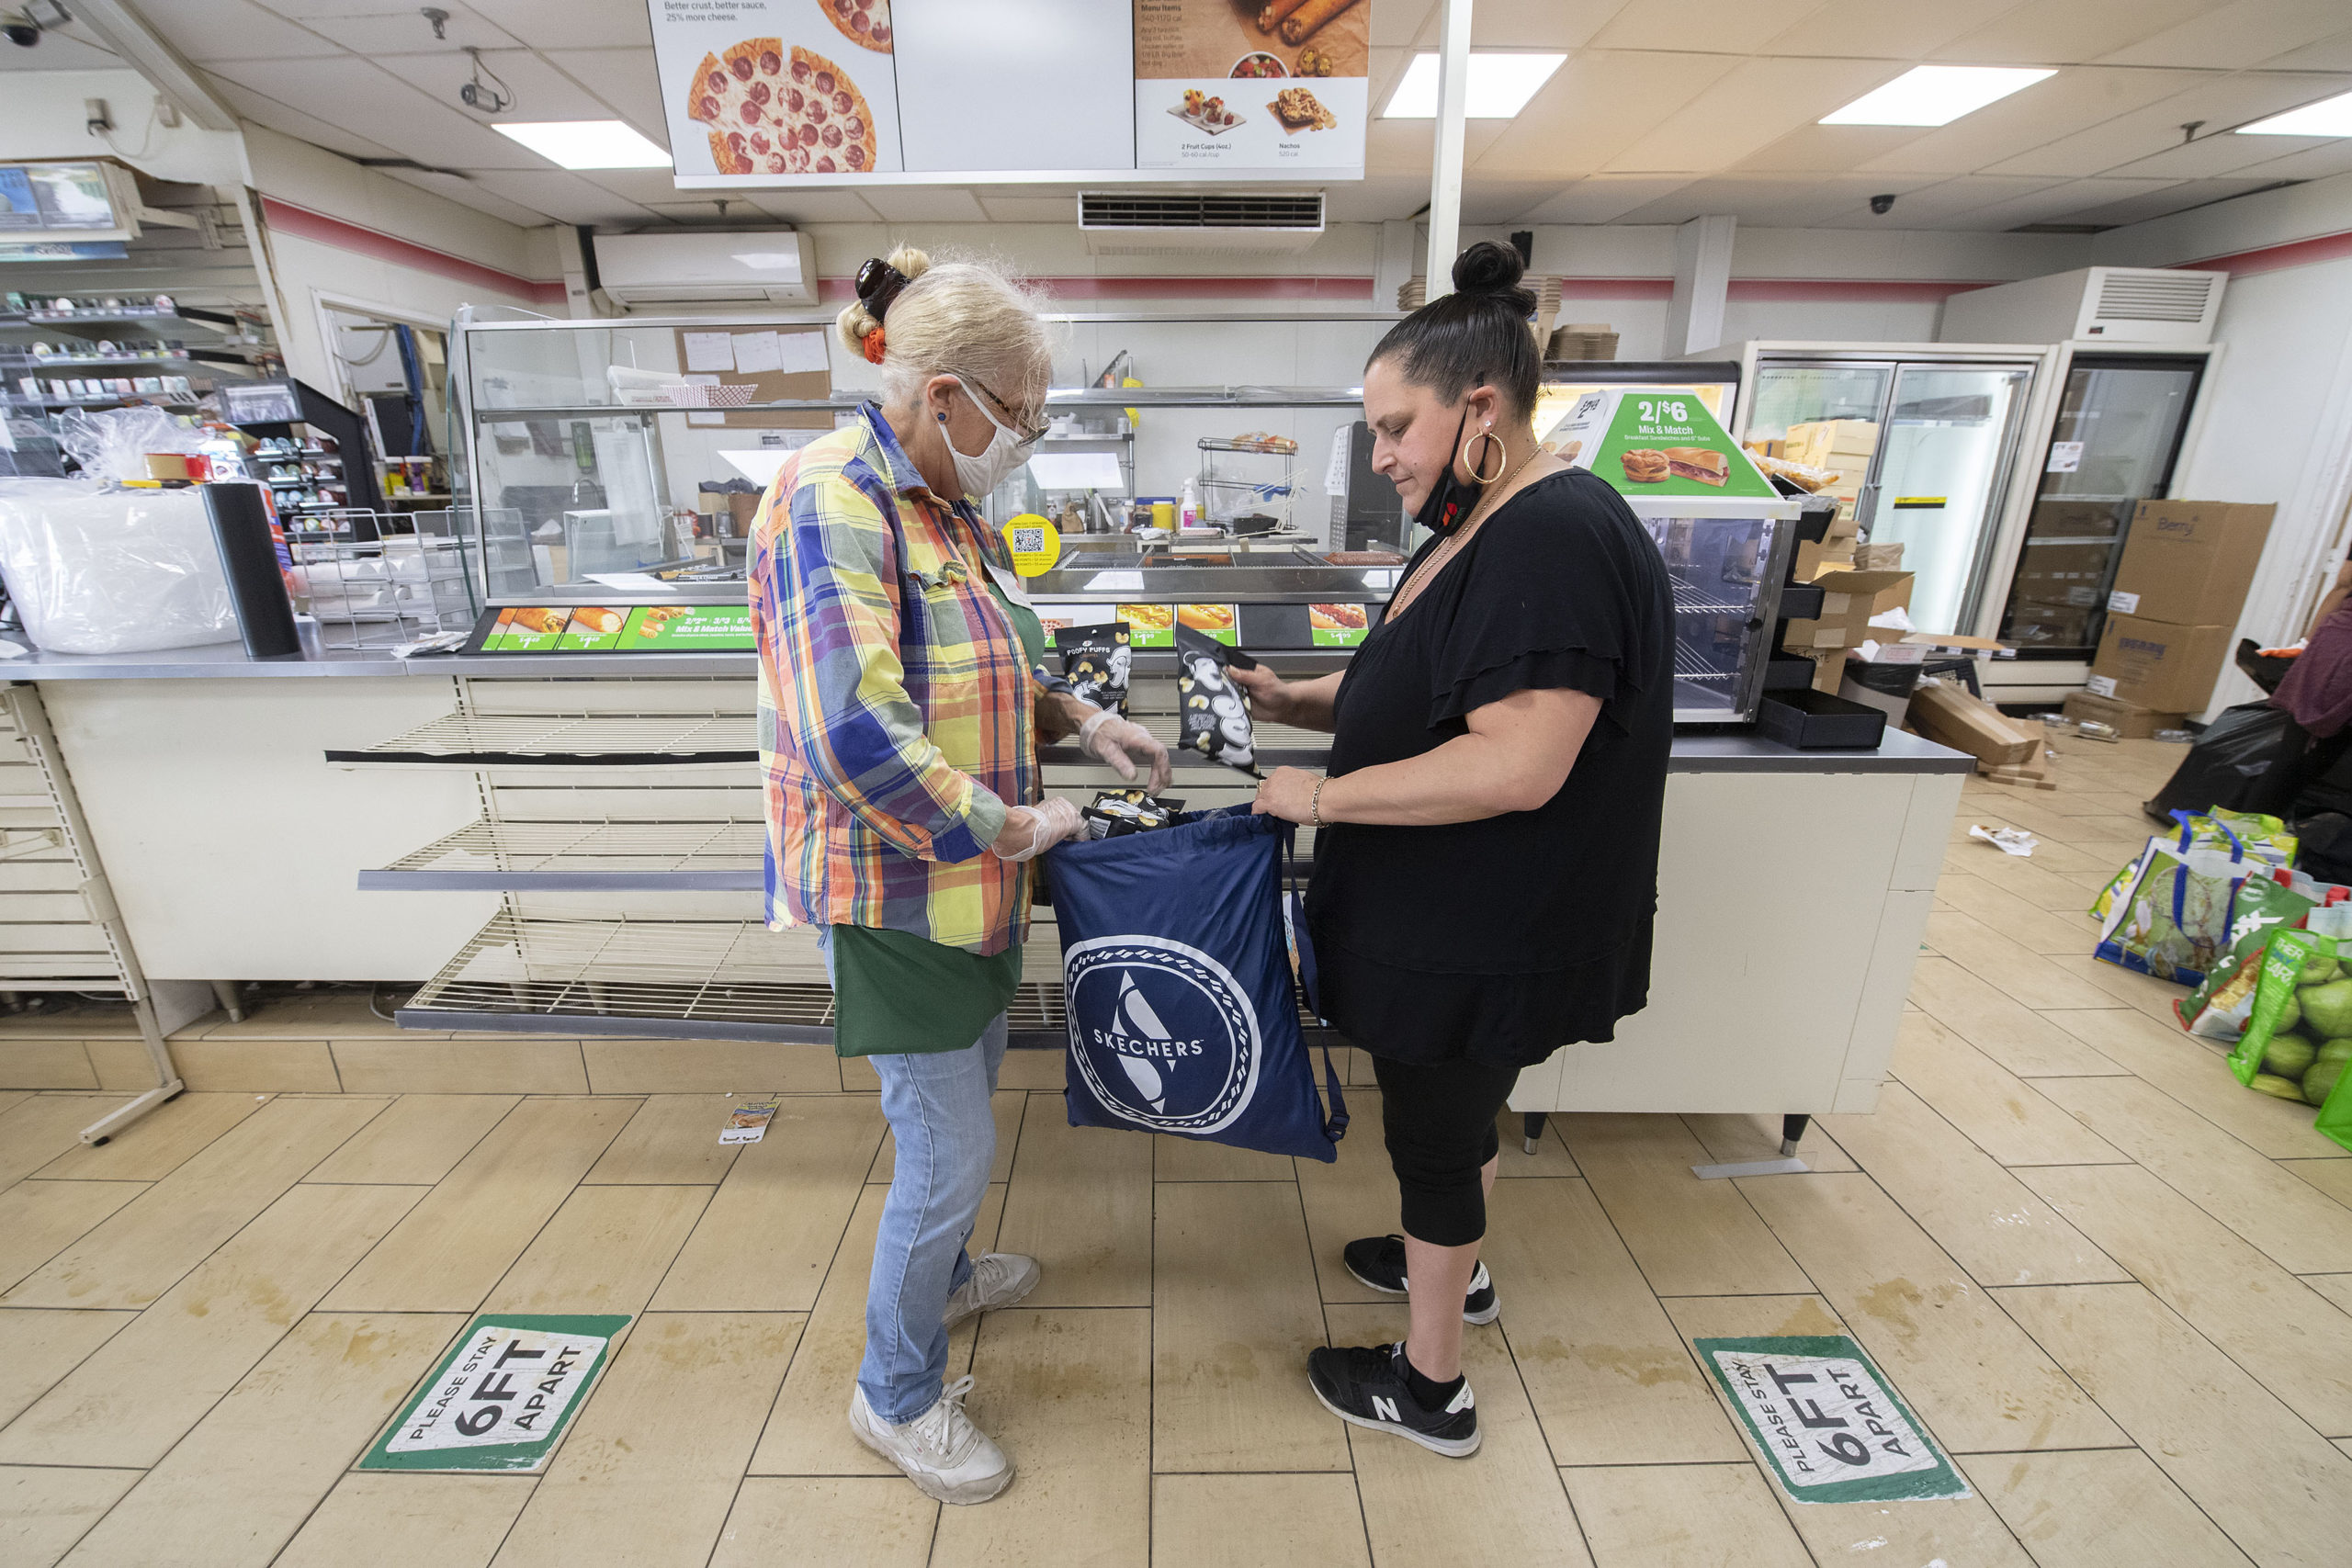 Cynthia Williams, one of 7-Eleven's managers, loads a bag of groceries donated to the Sag Harbor Food Pantry for volunteer Pam Kern. MICHAEL HELLER